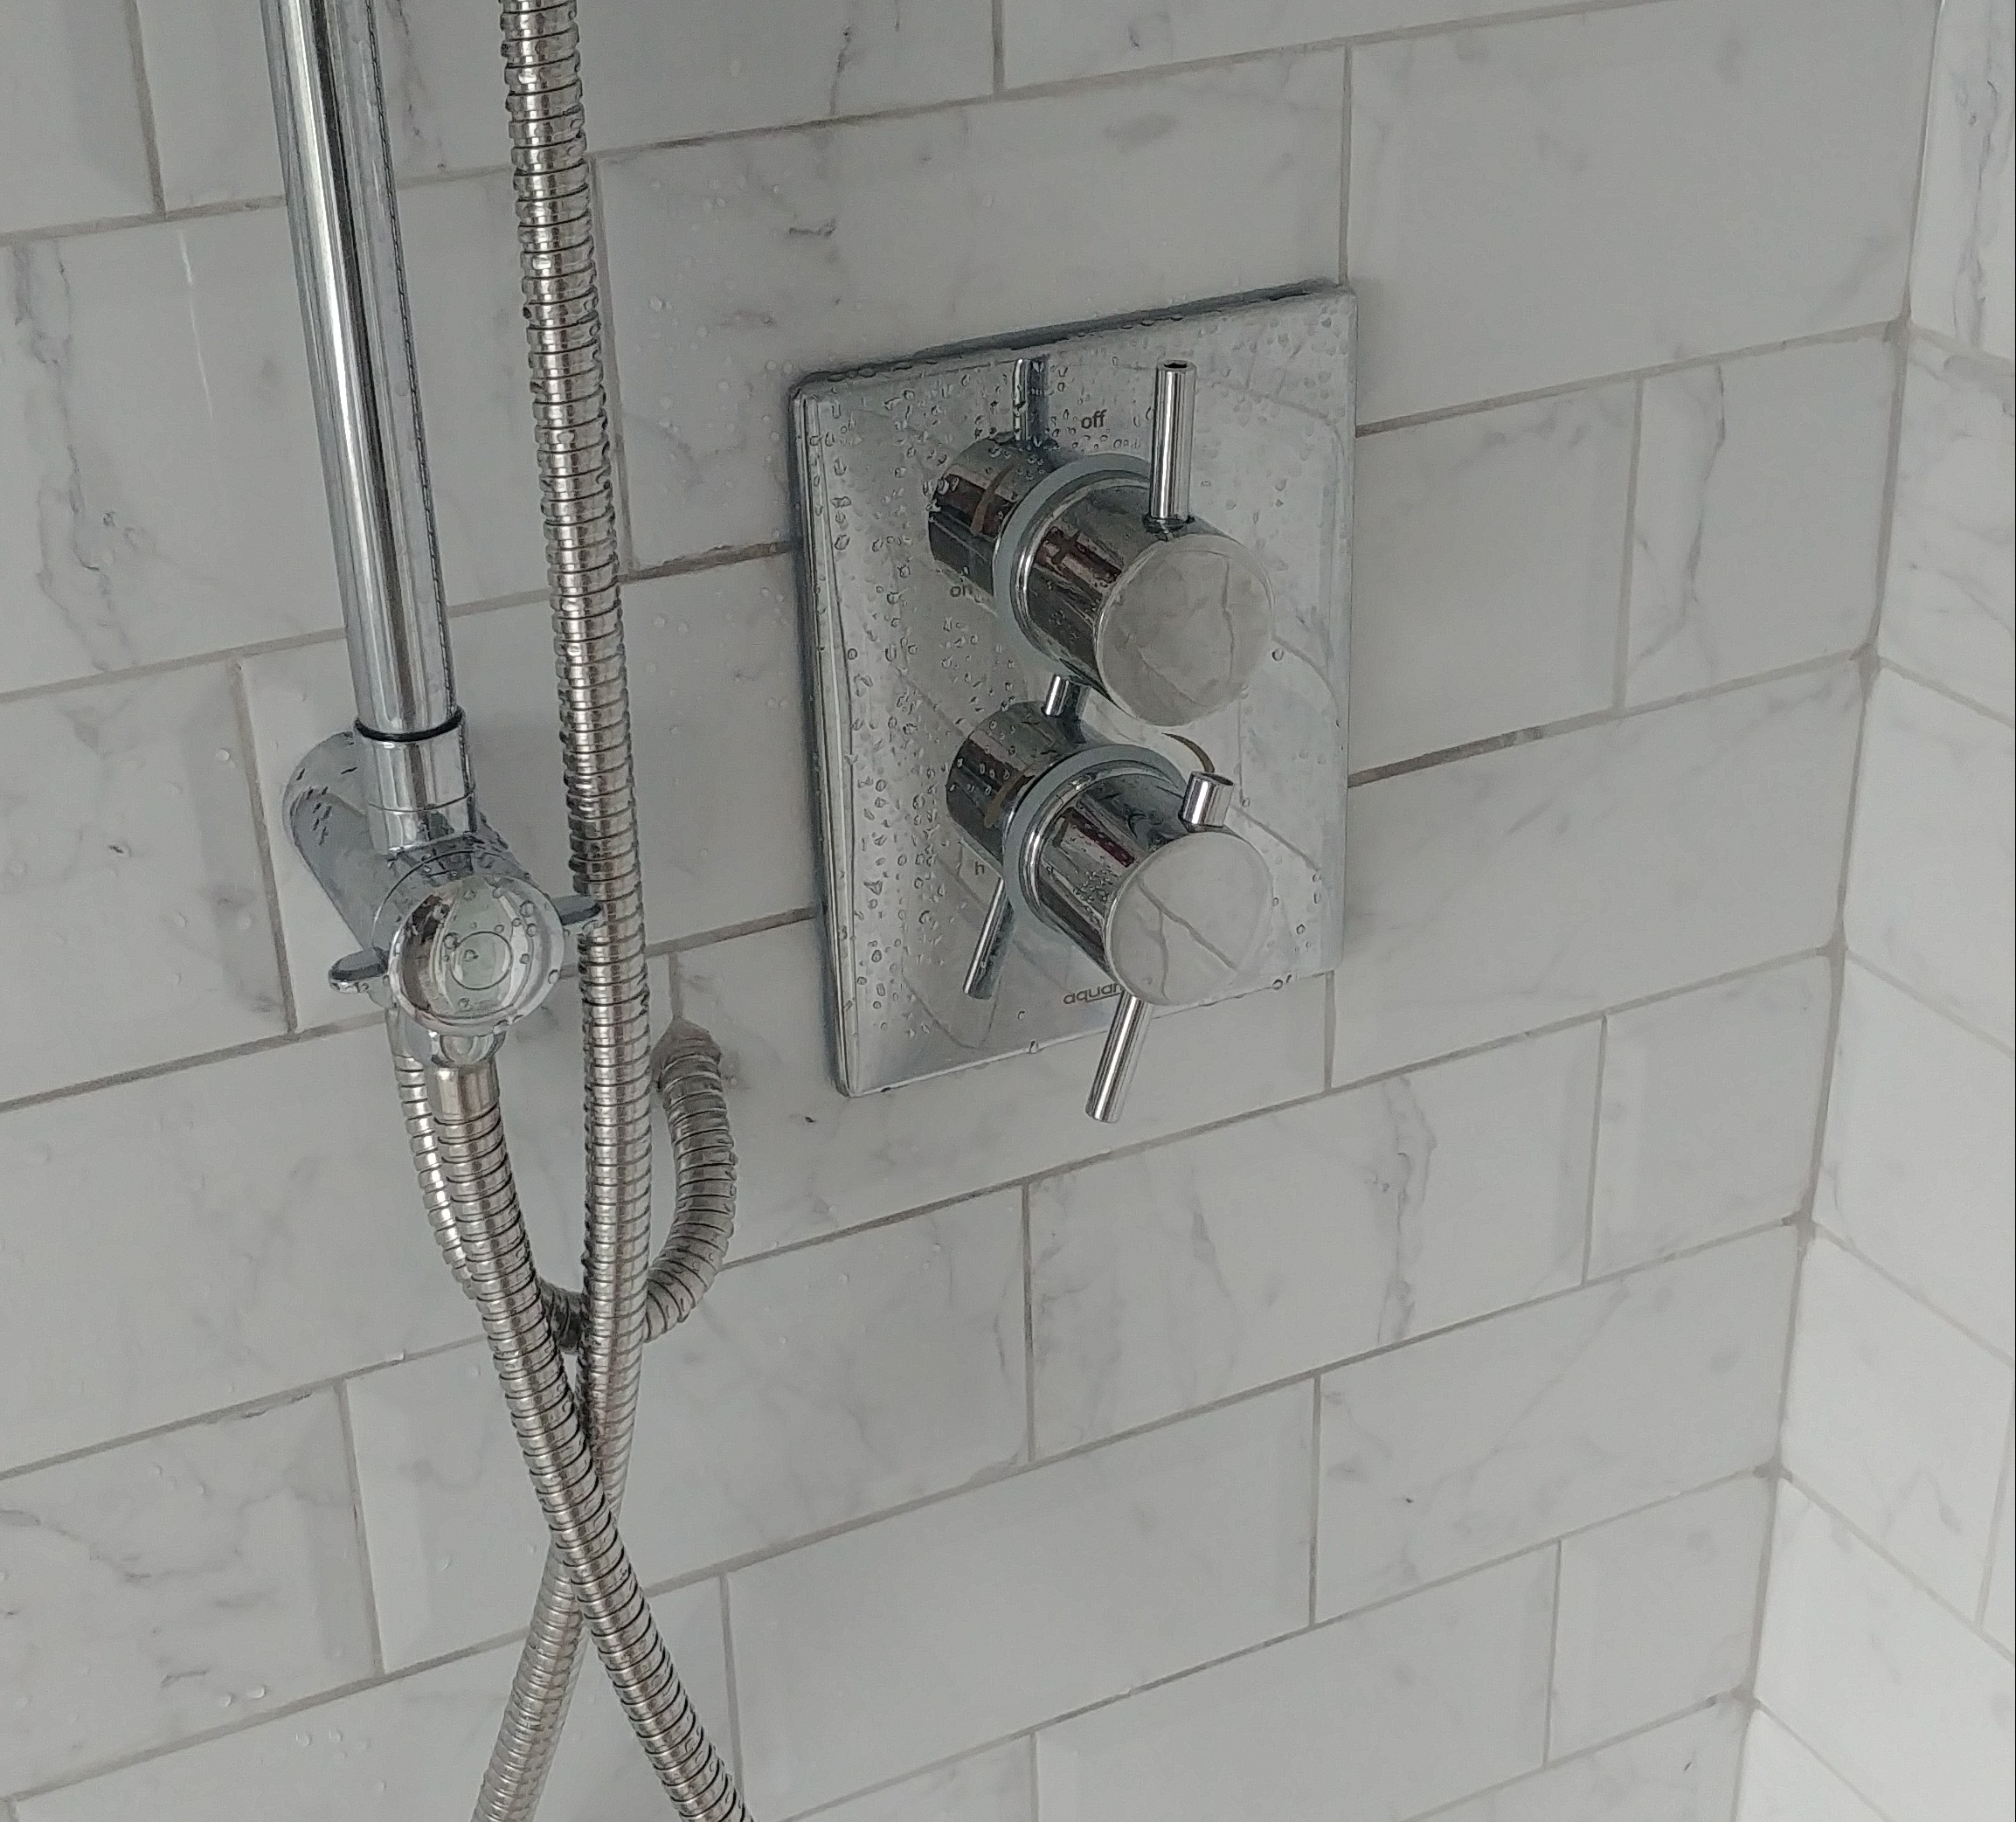 Thermostatic shower controls.